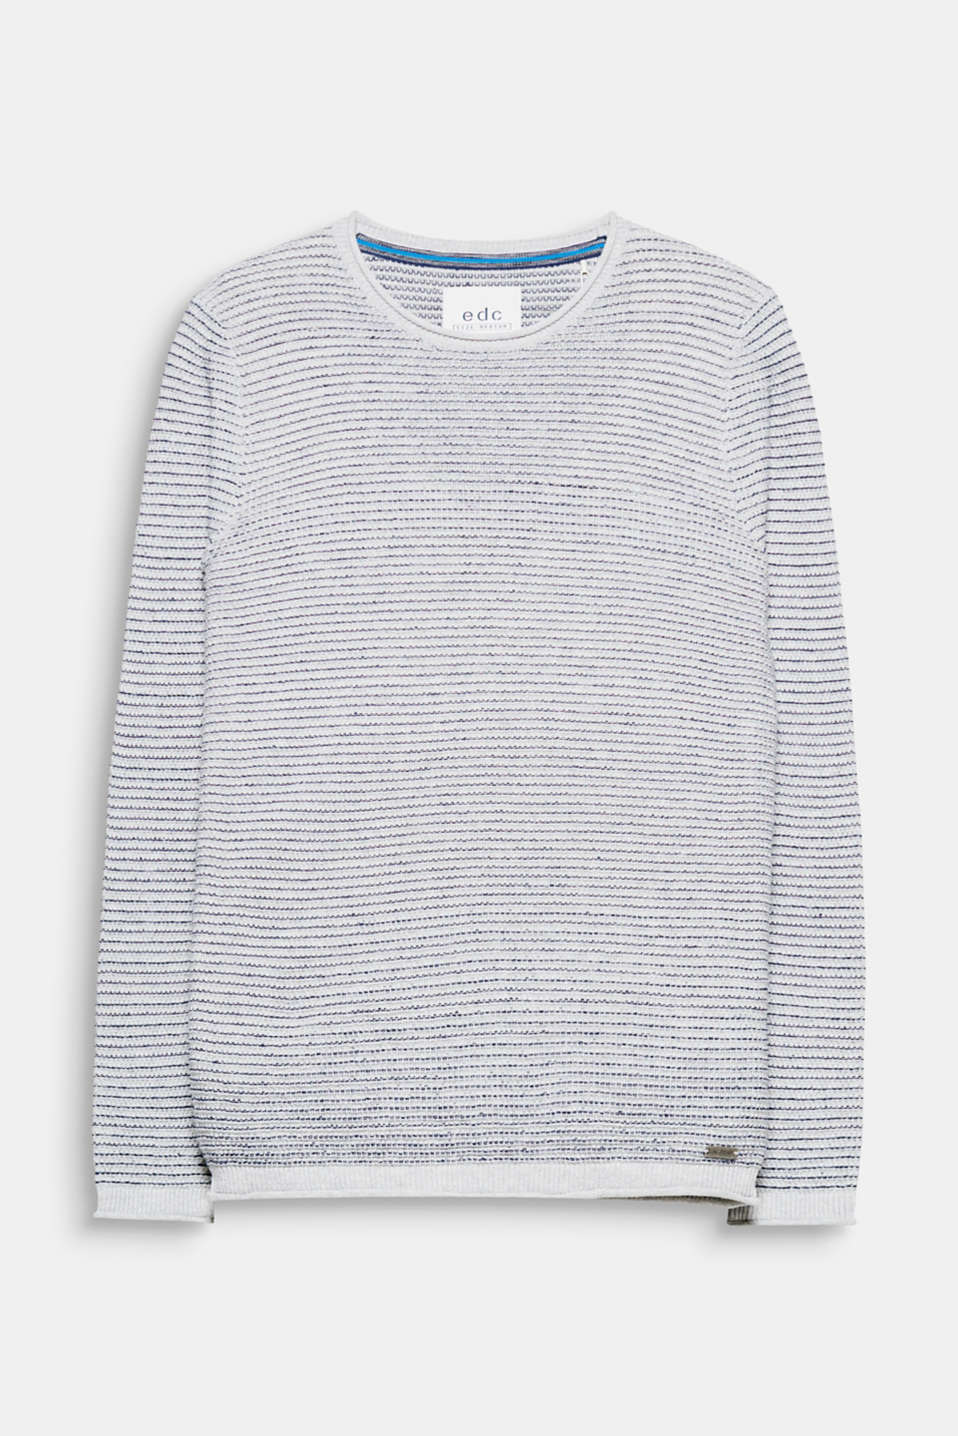 We love summery knits! The fine texture gives this jumper a lightweight look.